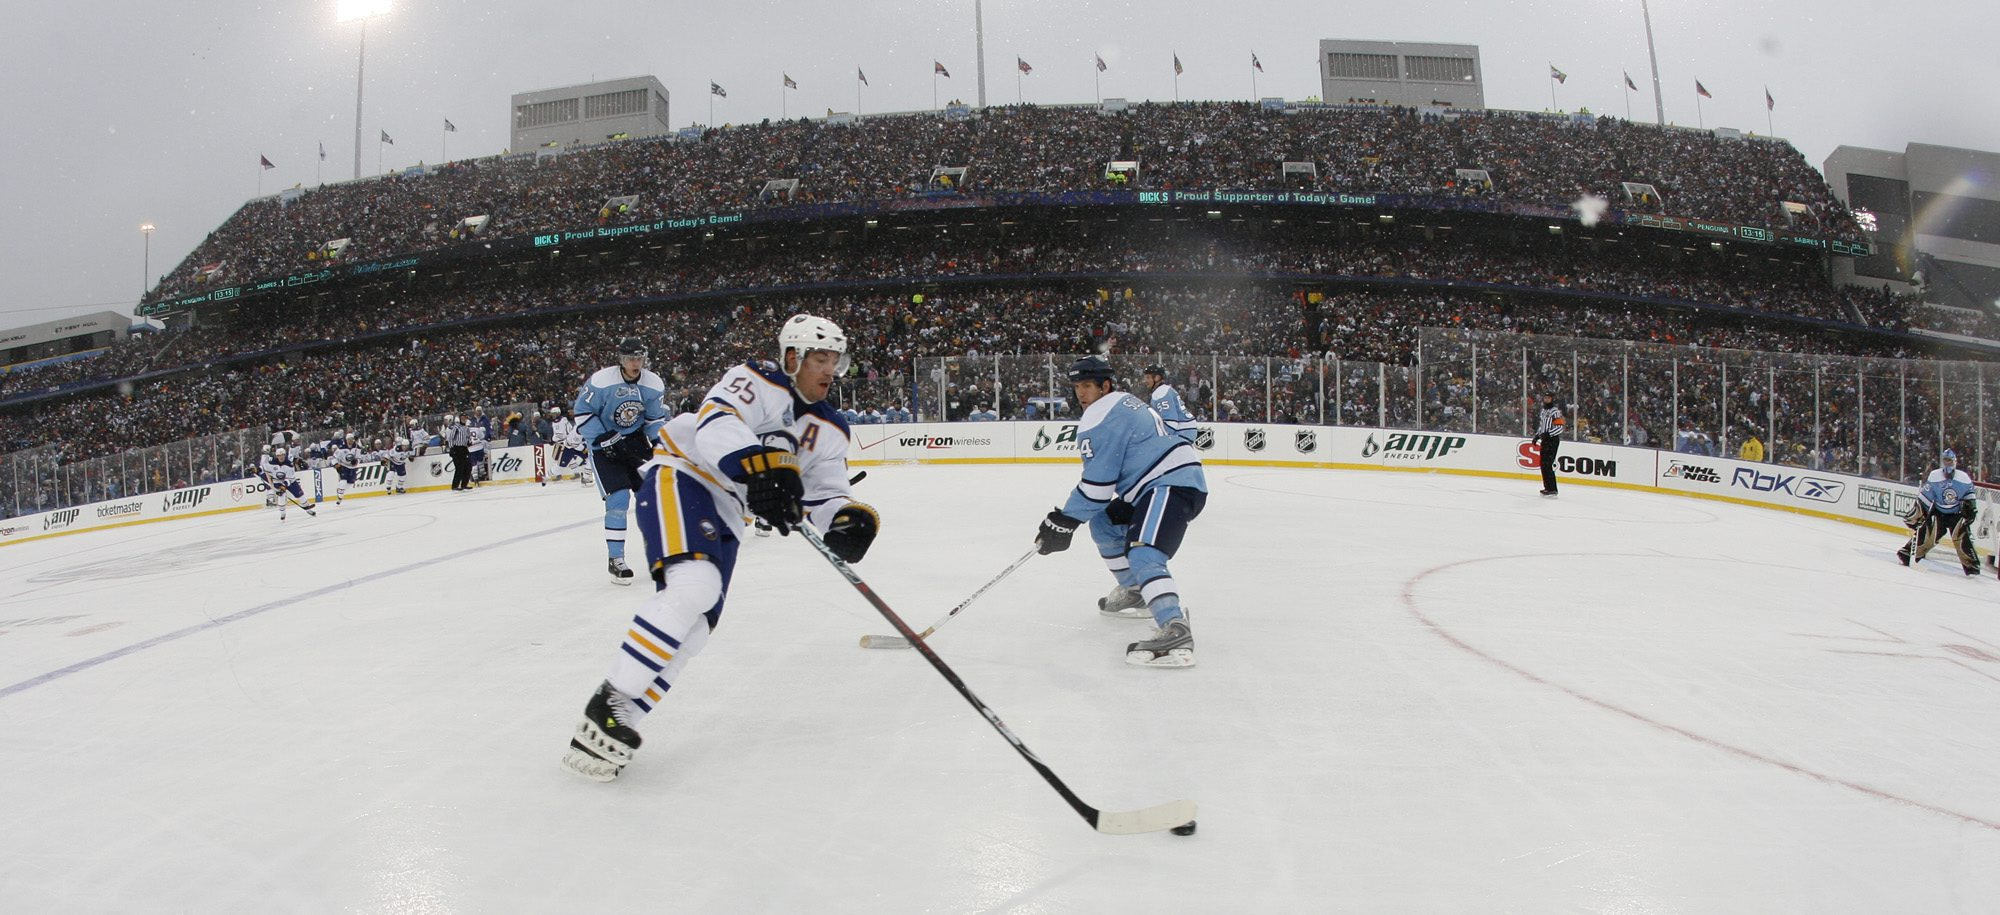 The 2008 NHL Winter Classic was played between the Sabres and the Penguins on on a picture-perfect winter day at Ralph Wilson Stadium. (Harry Scull Jr./Buffalo News file photo)